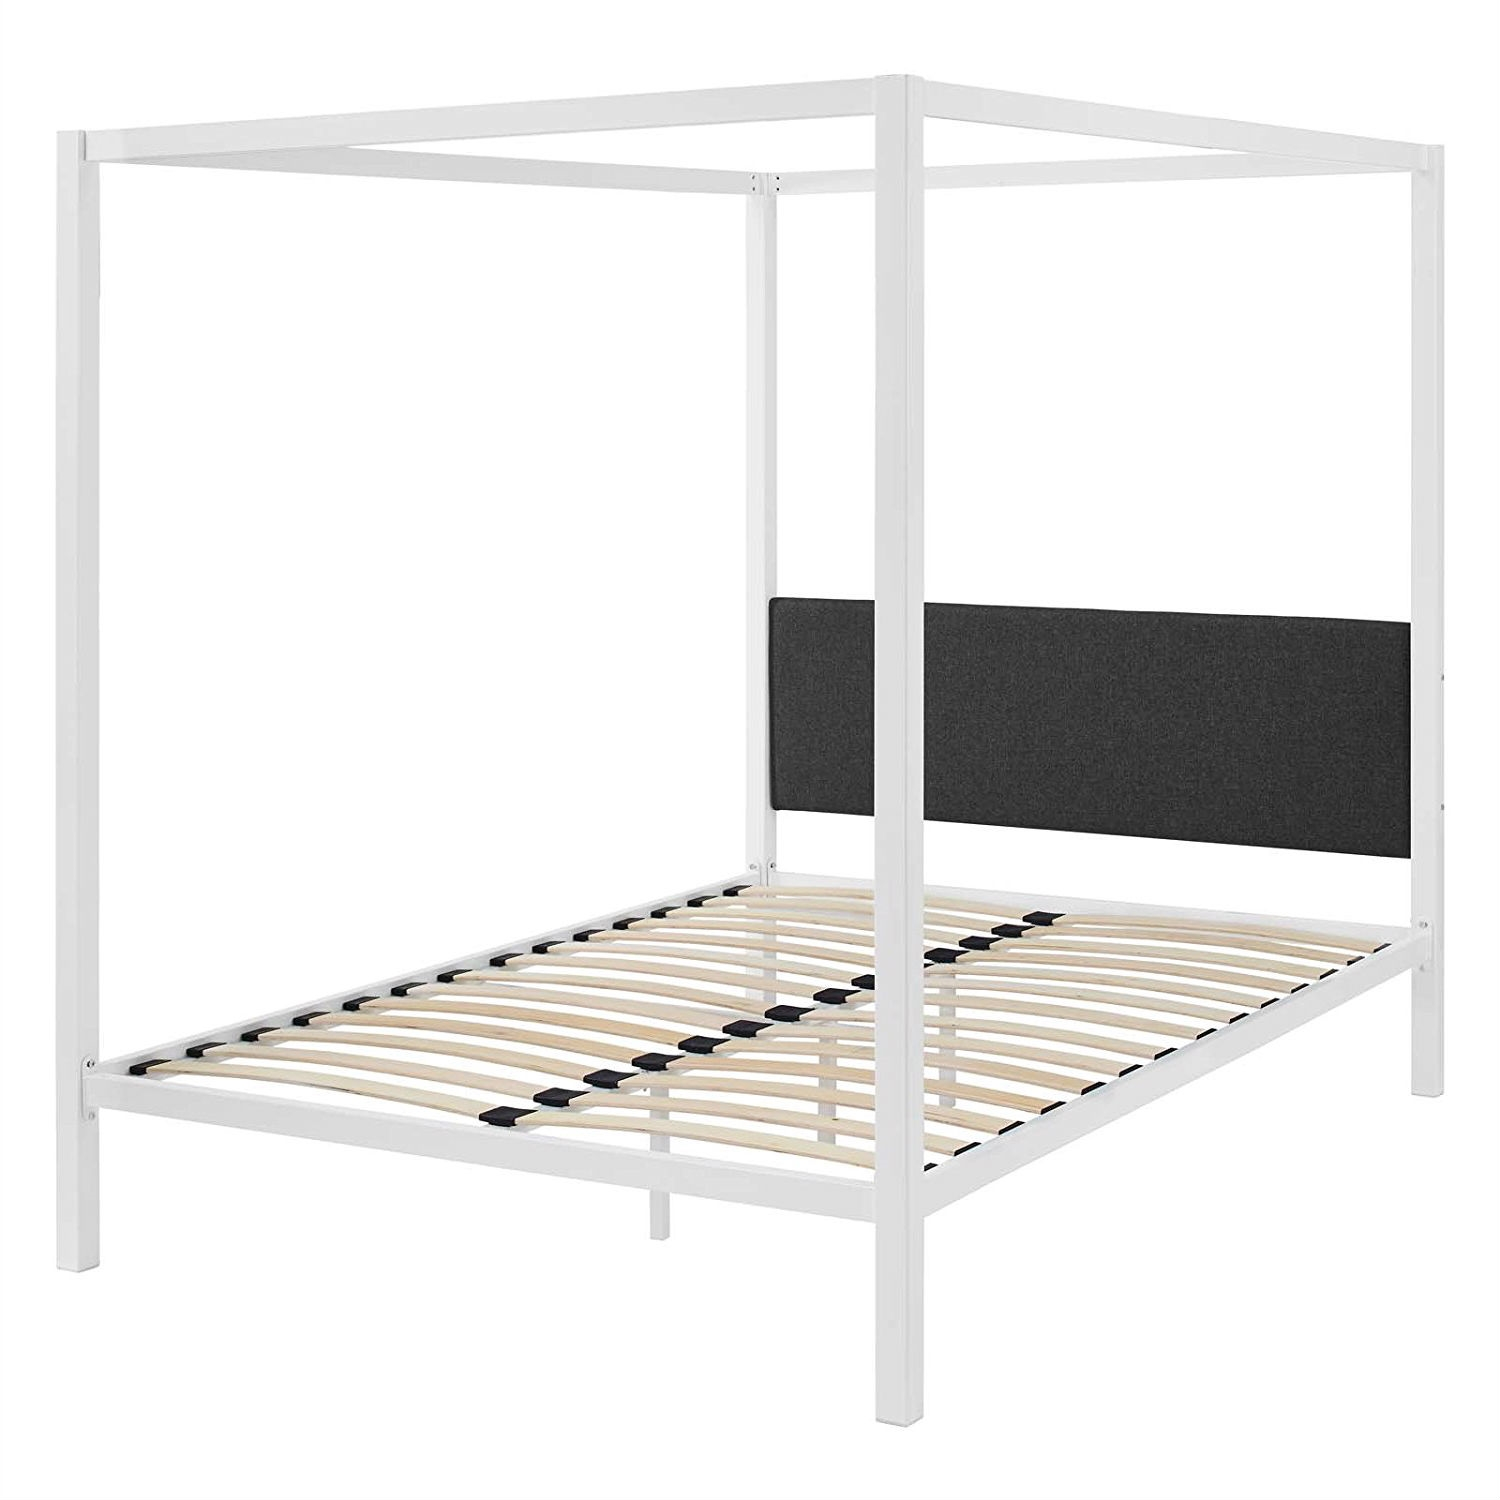 Picture of: Queen Size White Metal Canopy Bed Frame With Grey Fabric Upholstered Headboard Fastfurnishings Com